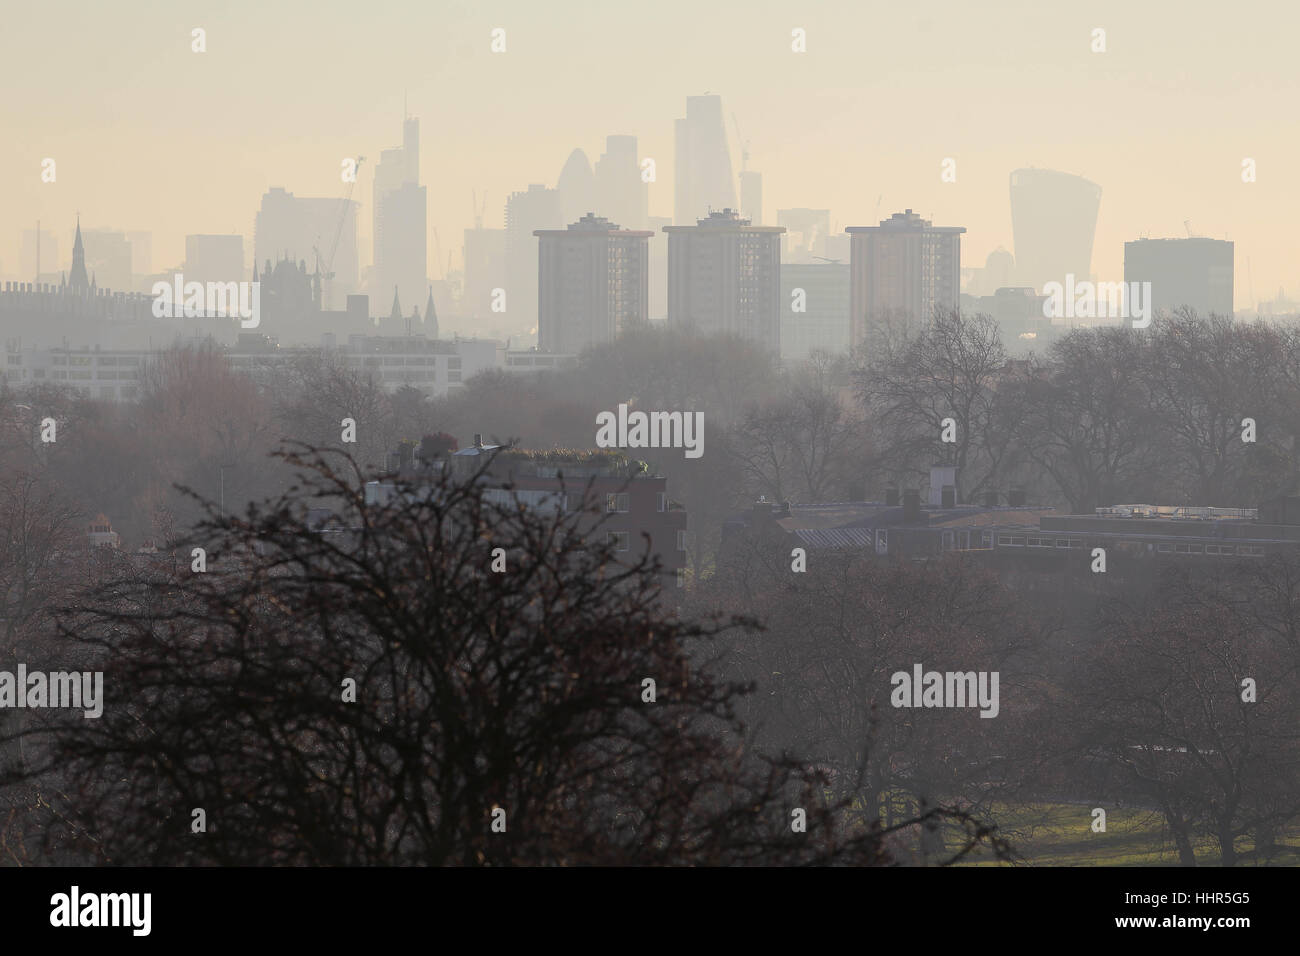 Smog and fumes across Central London from Primrose Hill Nigel Bowles/Alamy - Stock Image